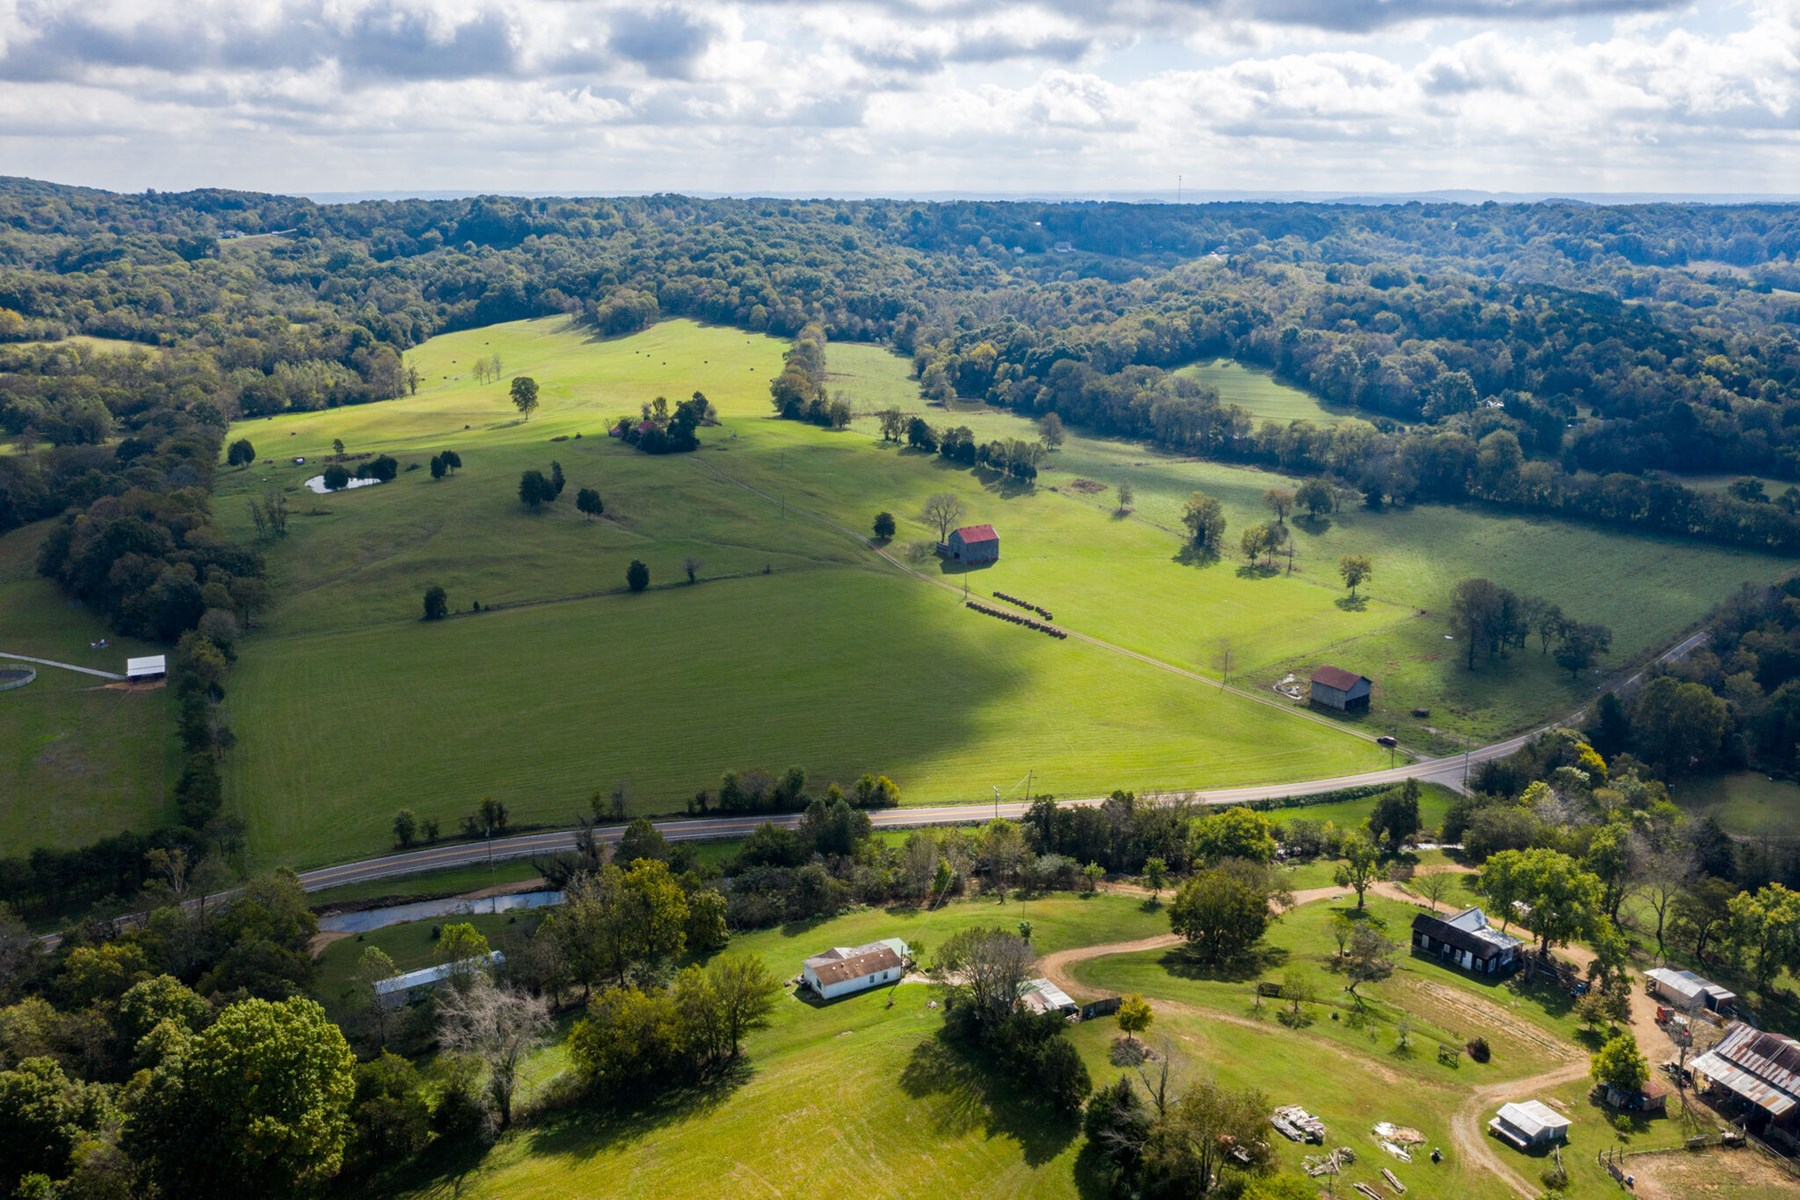 Equine or Cattle Farm for Sale in Mount Pleasant, Tennessee